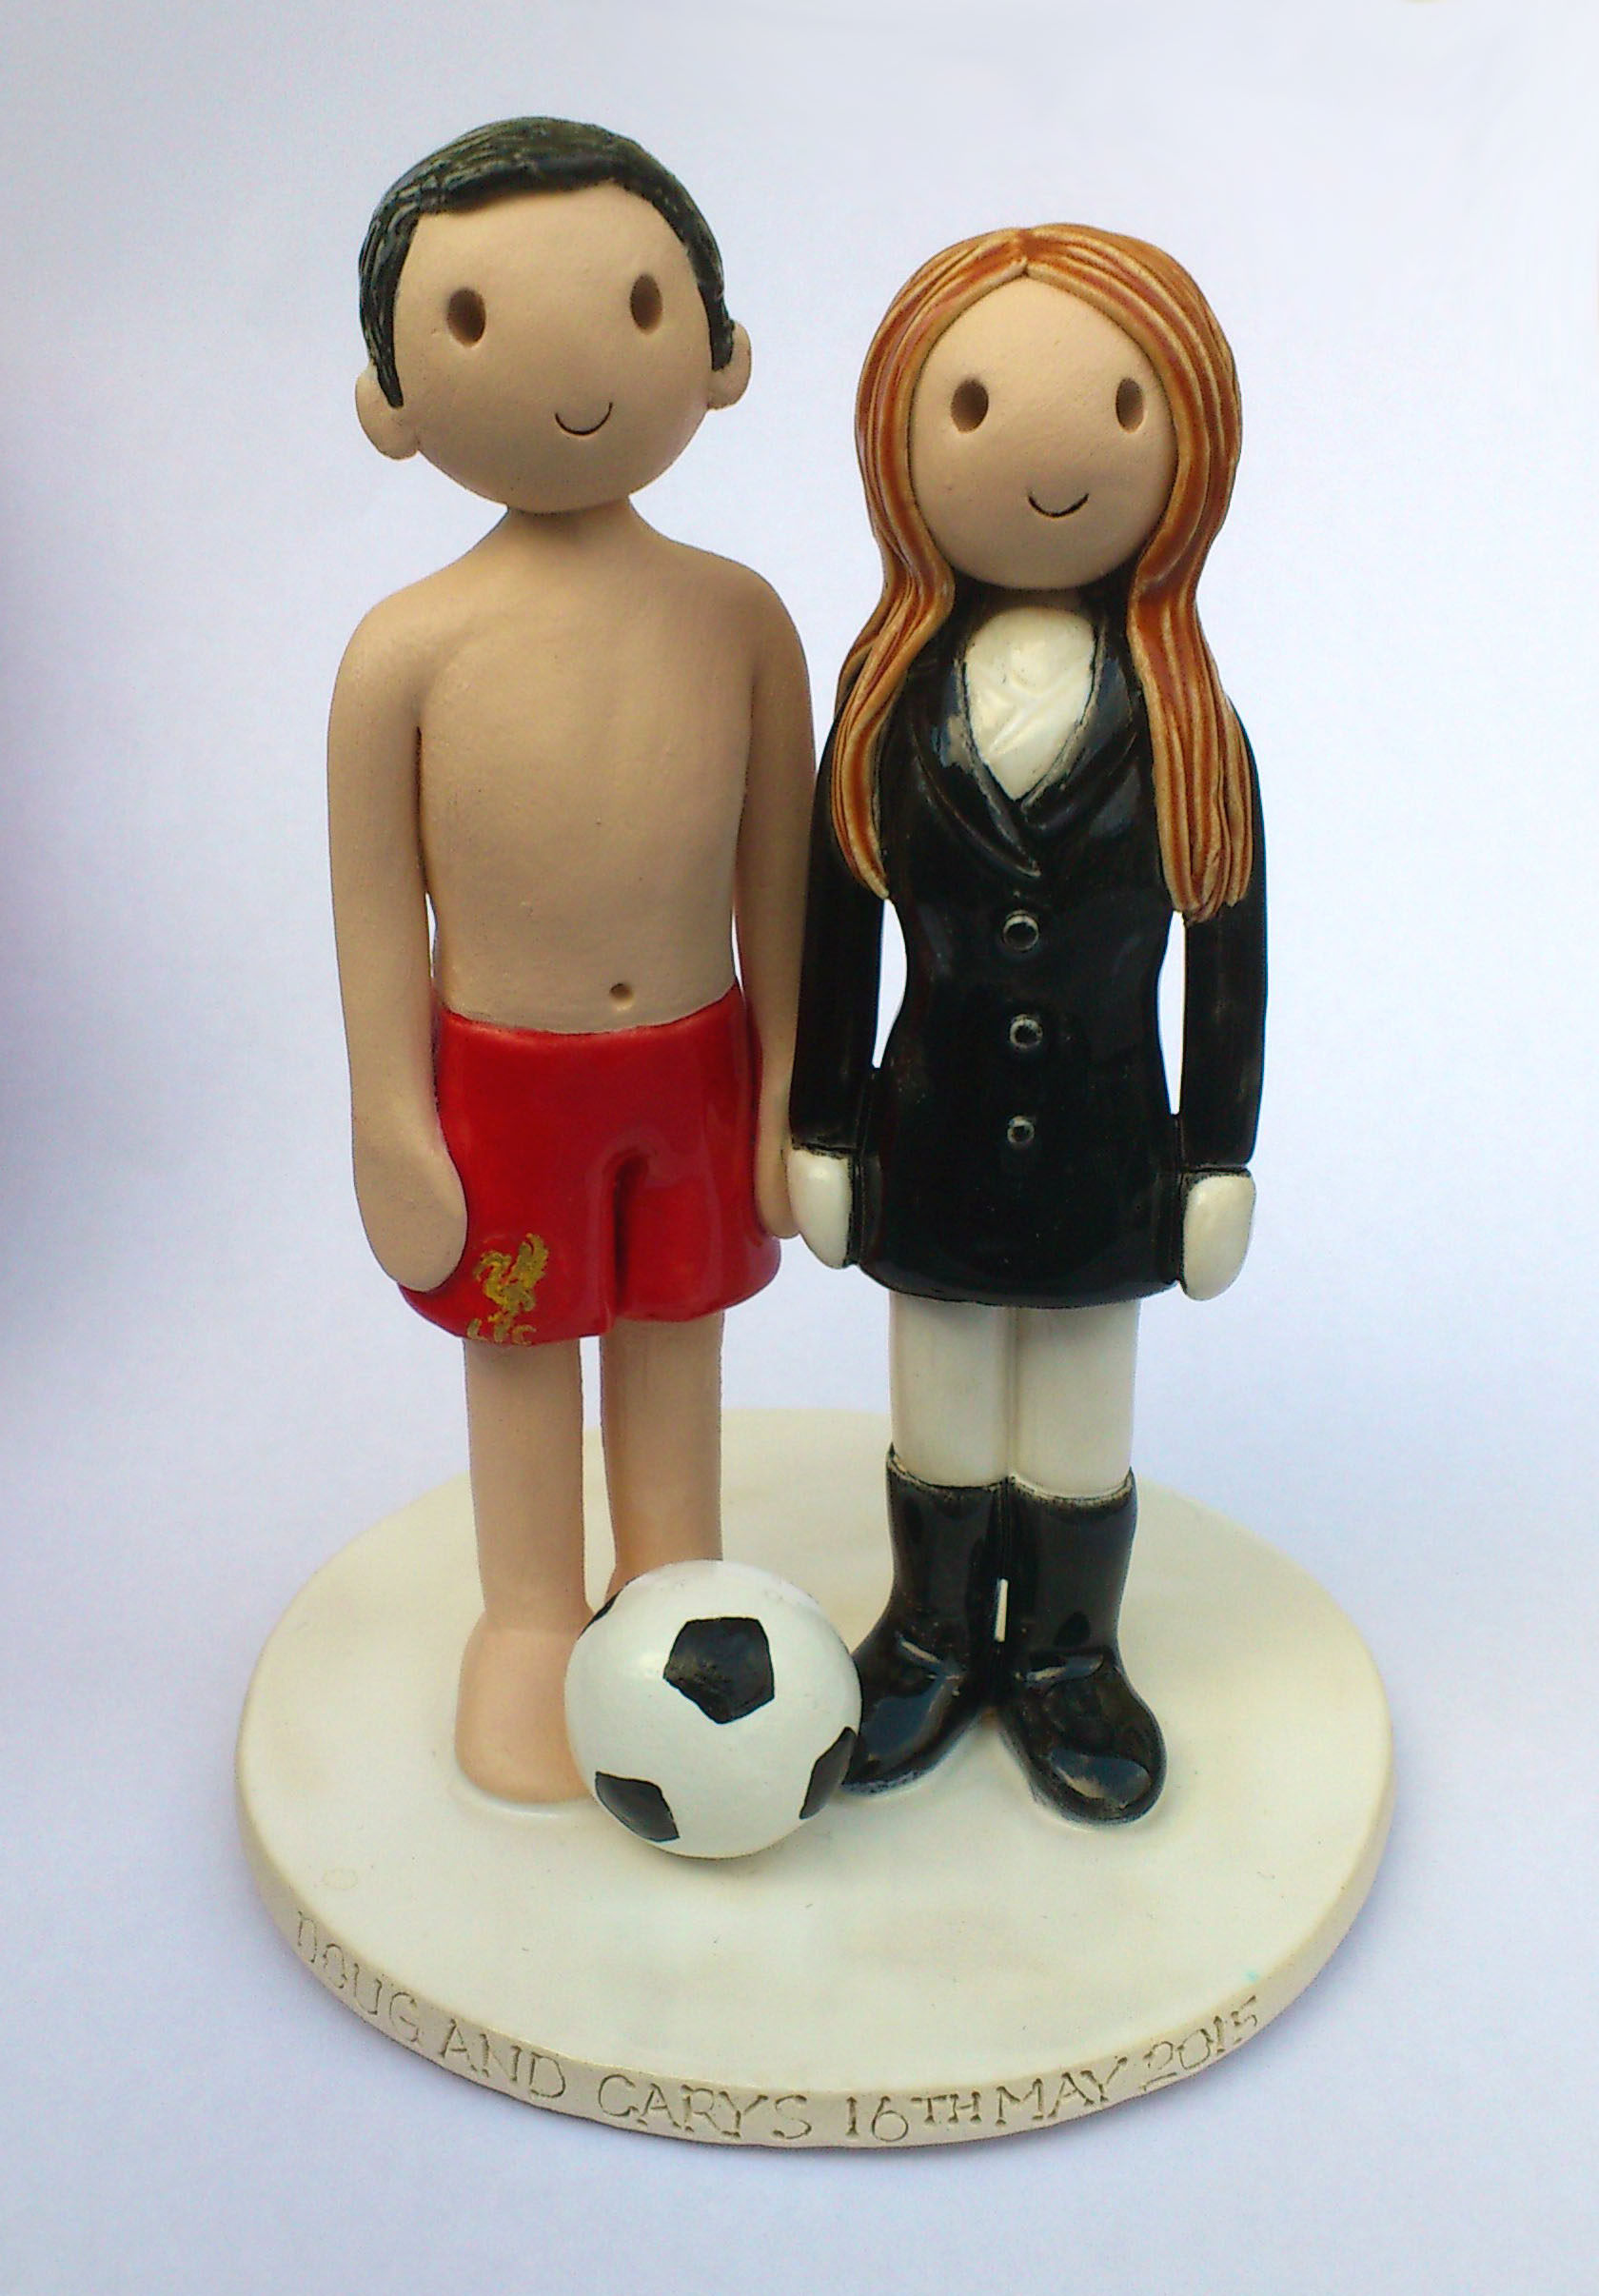 Tanja Cake Topper Artist : Wedding Cake Toppers Gallery. Personalised Cake Topper ...